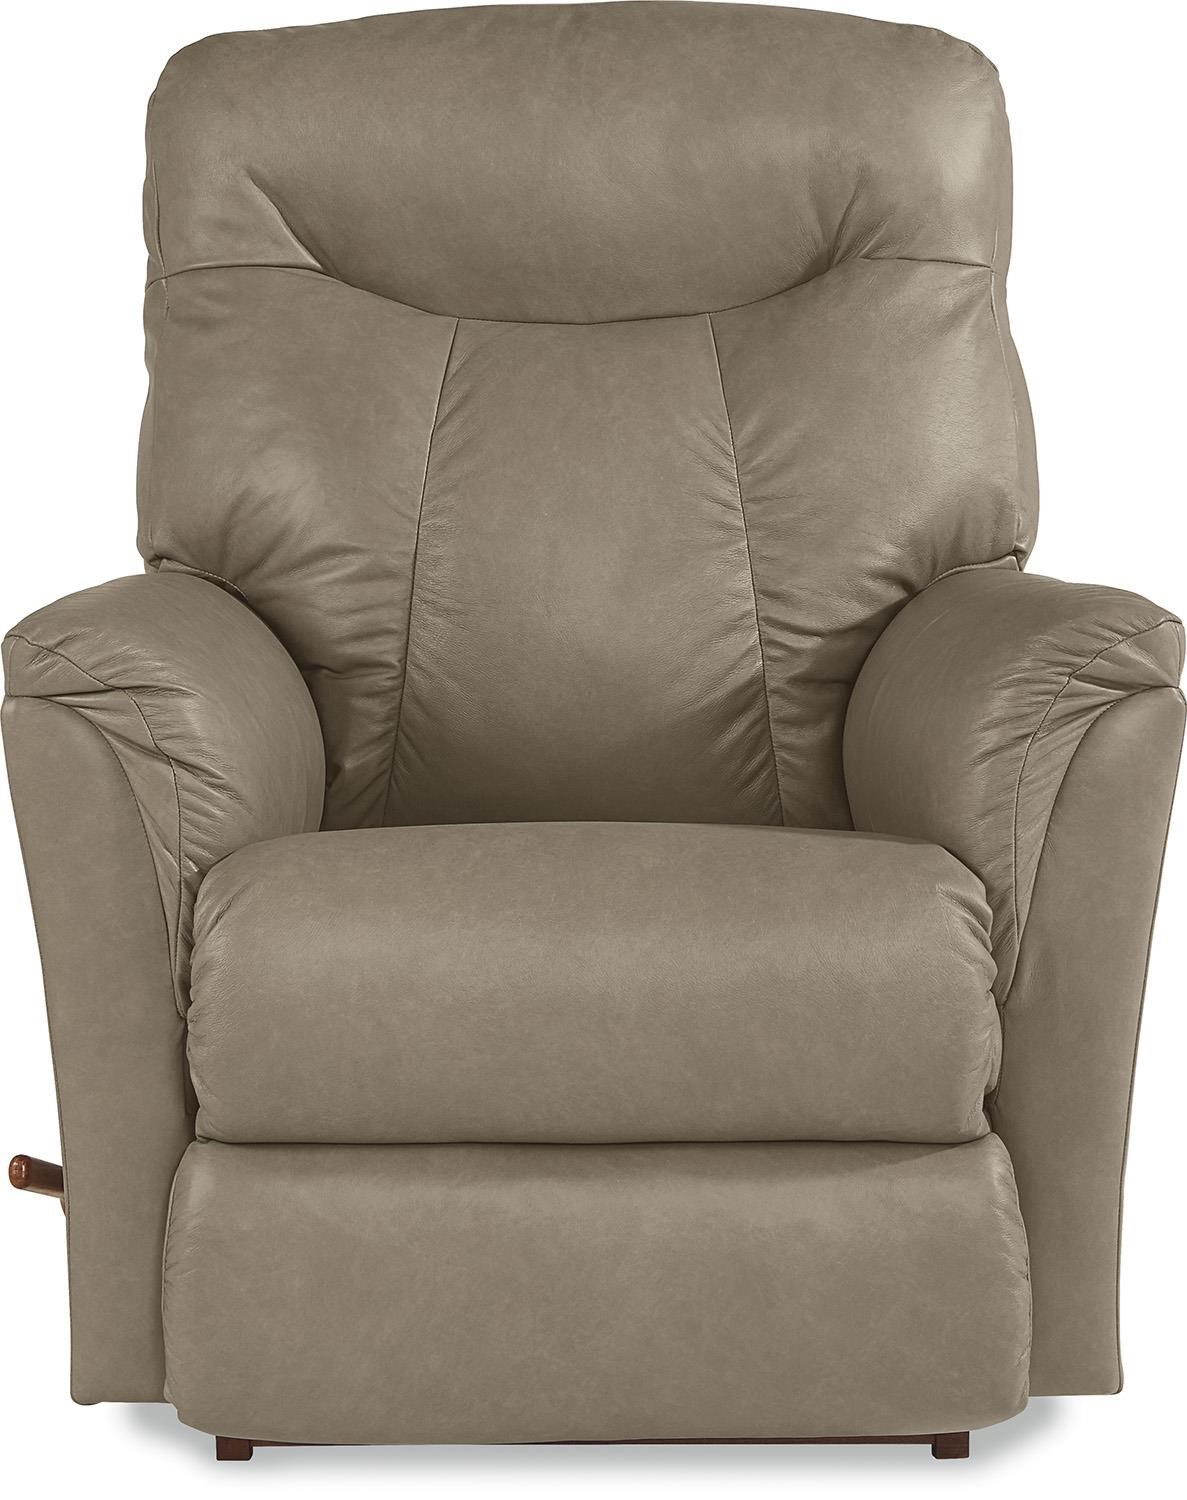 La-Z-Boy Fabric Fortune Leather Dusk Reclina-Rocker® Recliner - Great American Home Store - Three Way Recliners  sc 1 st  Great American Home Store & La-Z-Boy Fabric Fortune Leather Dusk Reclina-Rocker® Recliner ... islam-shia.org